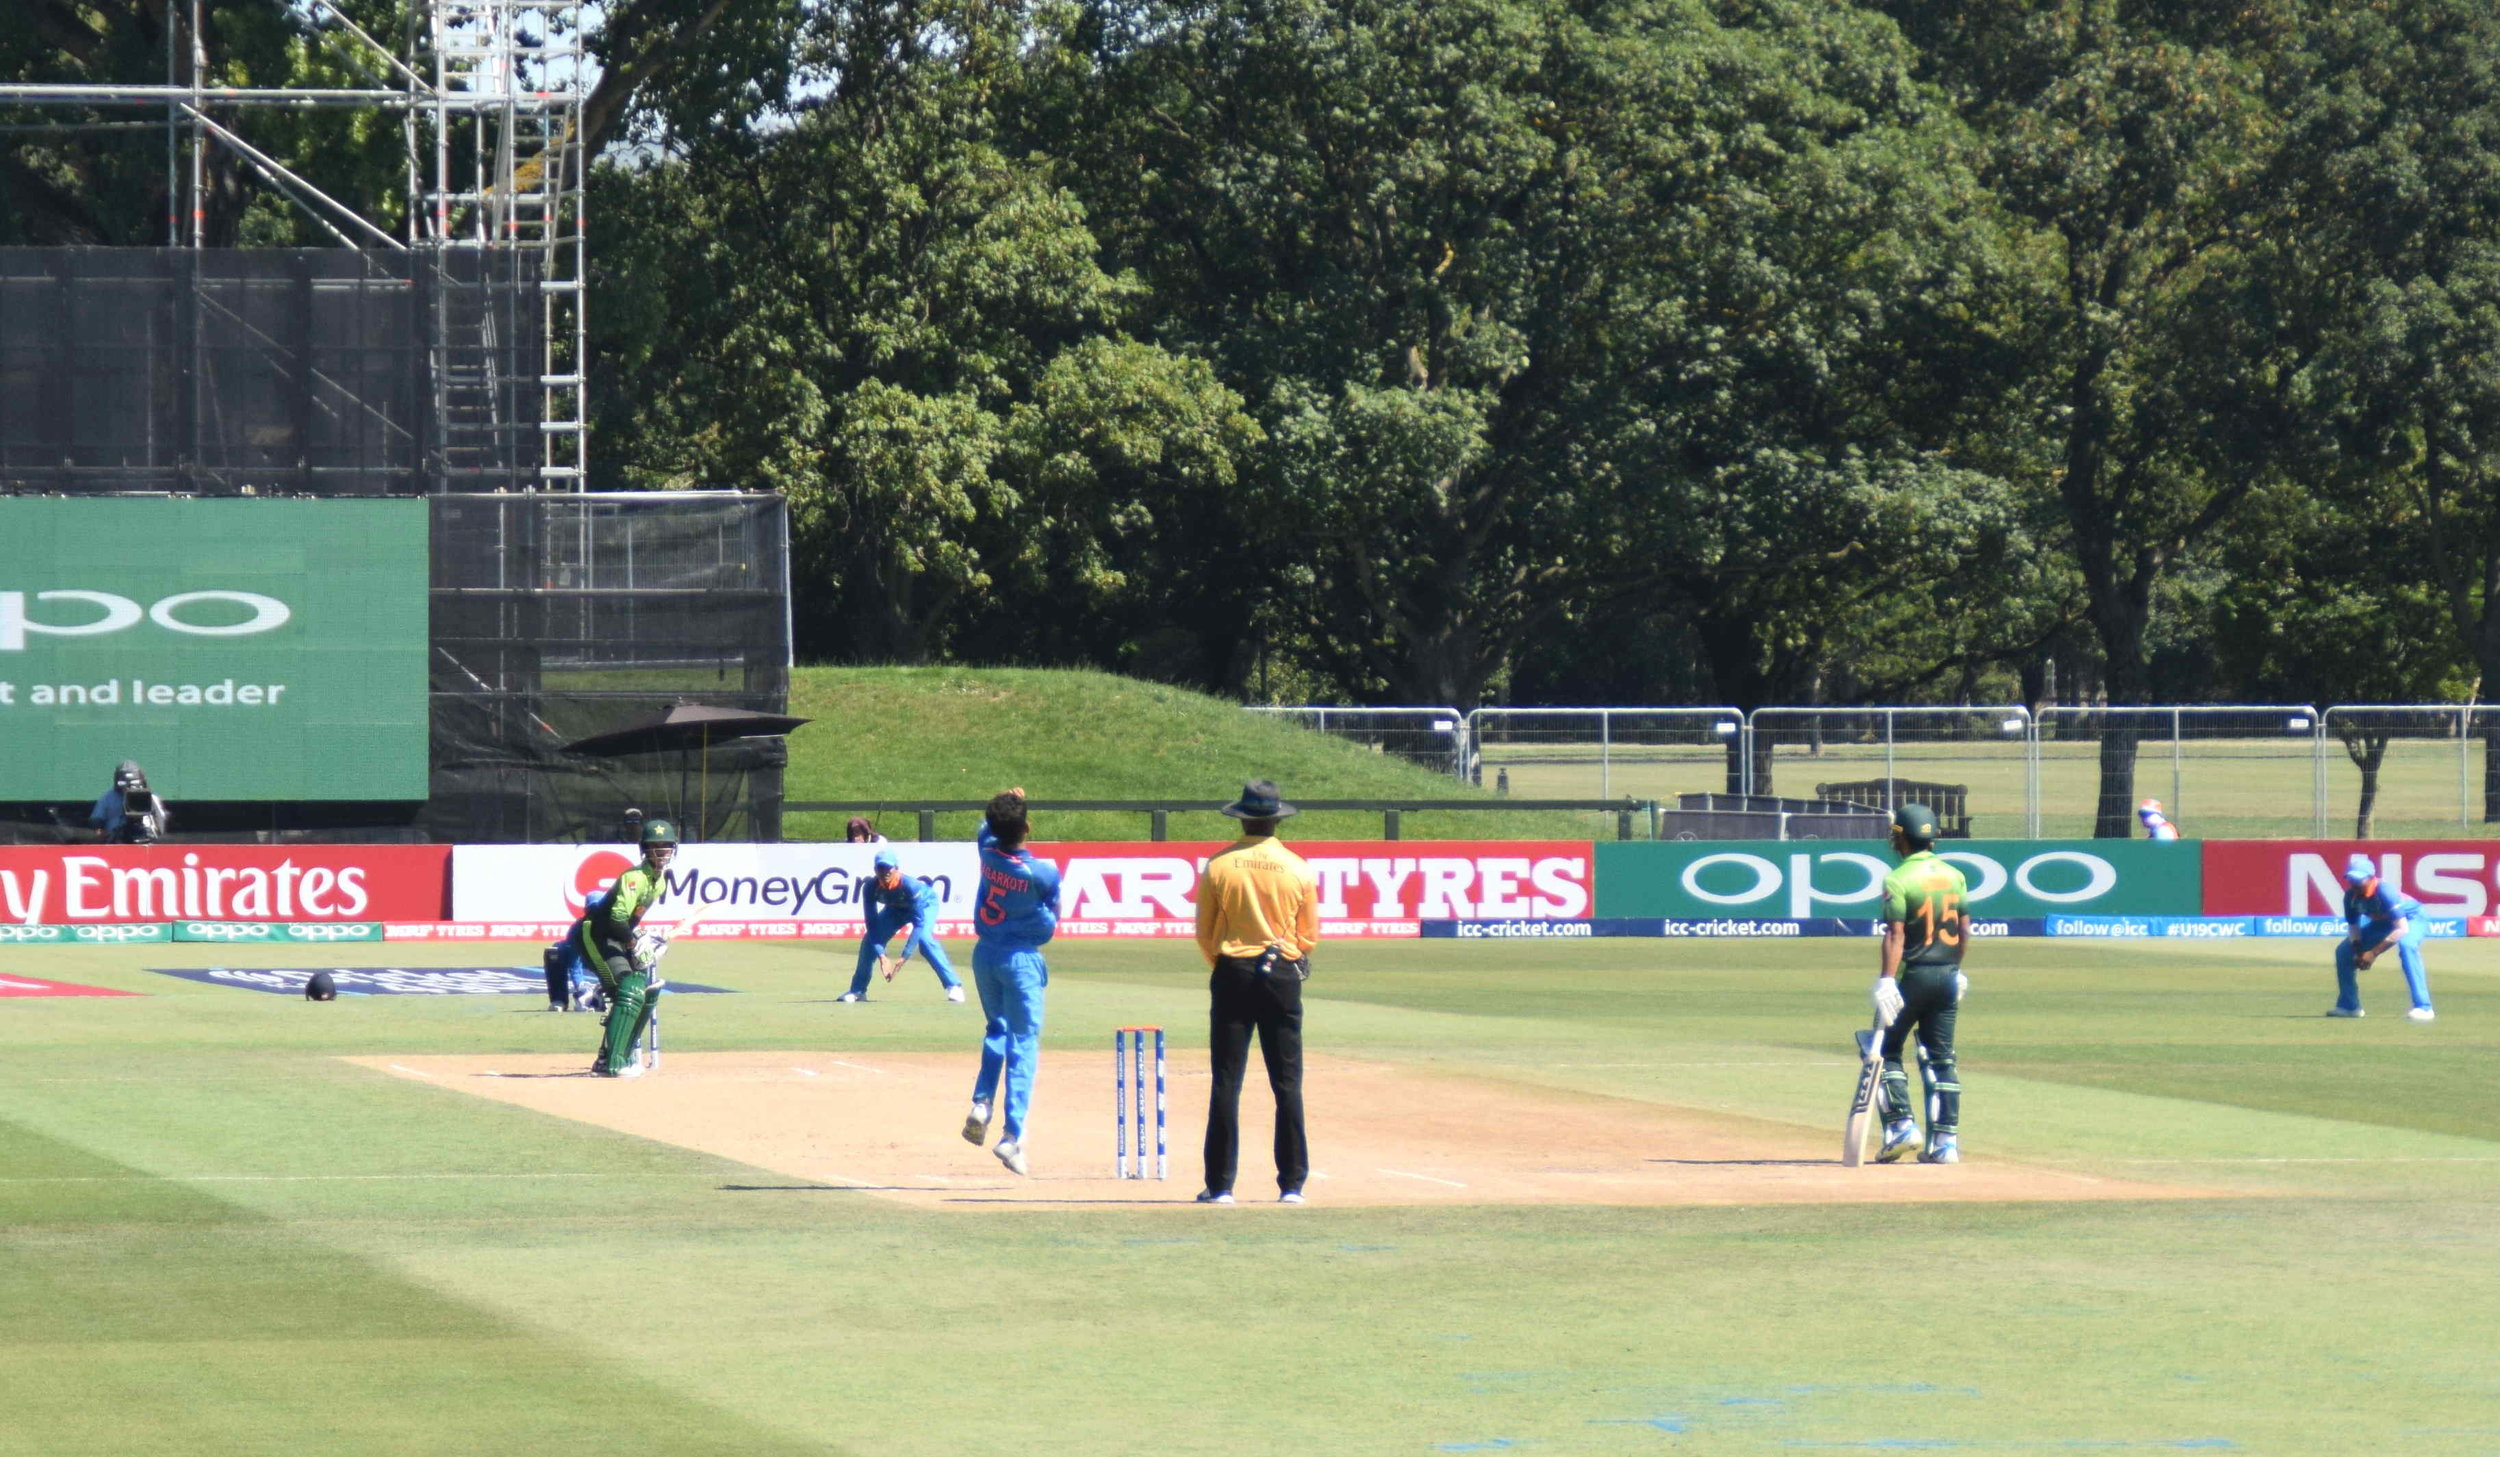 India showed the strength of their bowling line-up; here's pacer KL Nagarkoti clocking 140 kmph